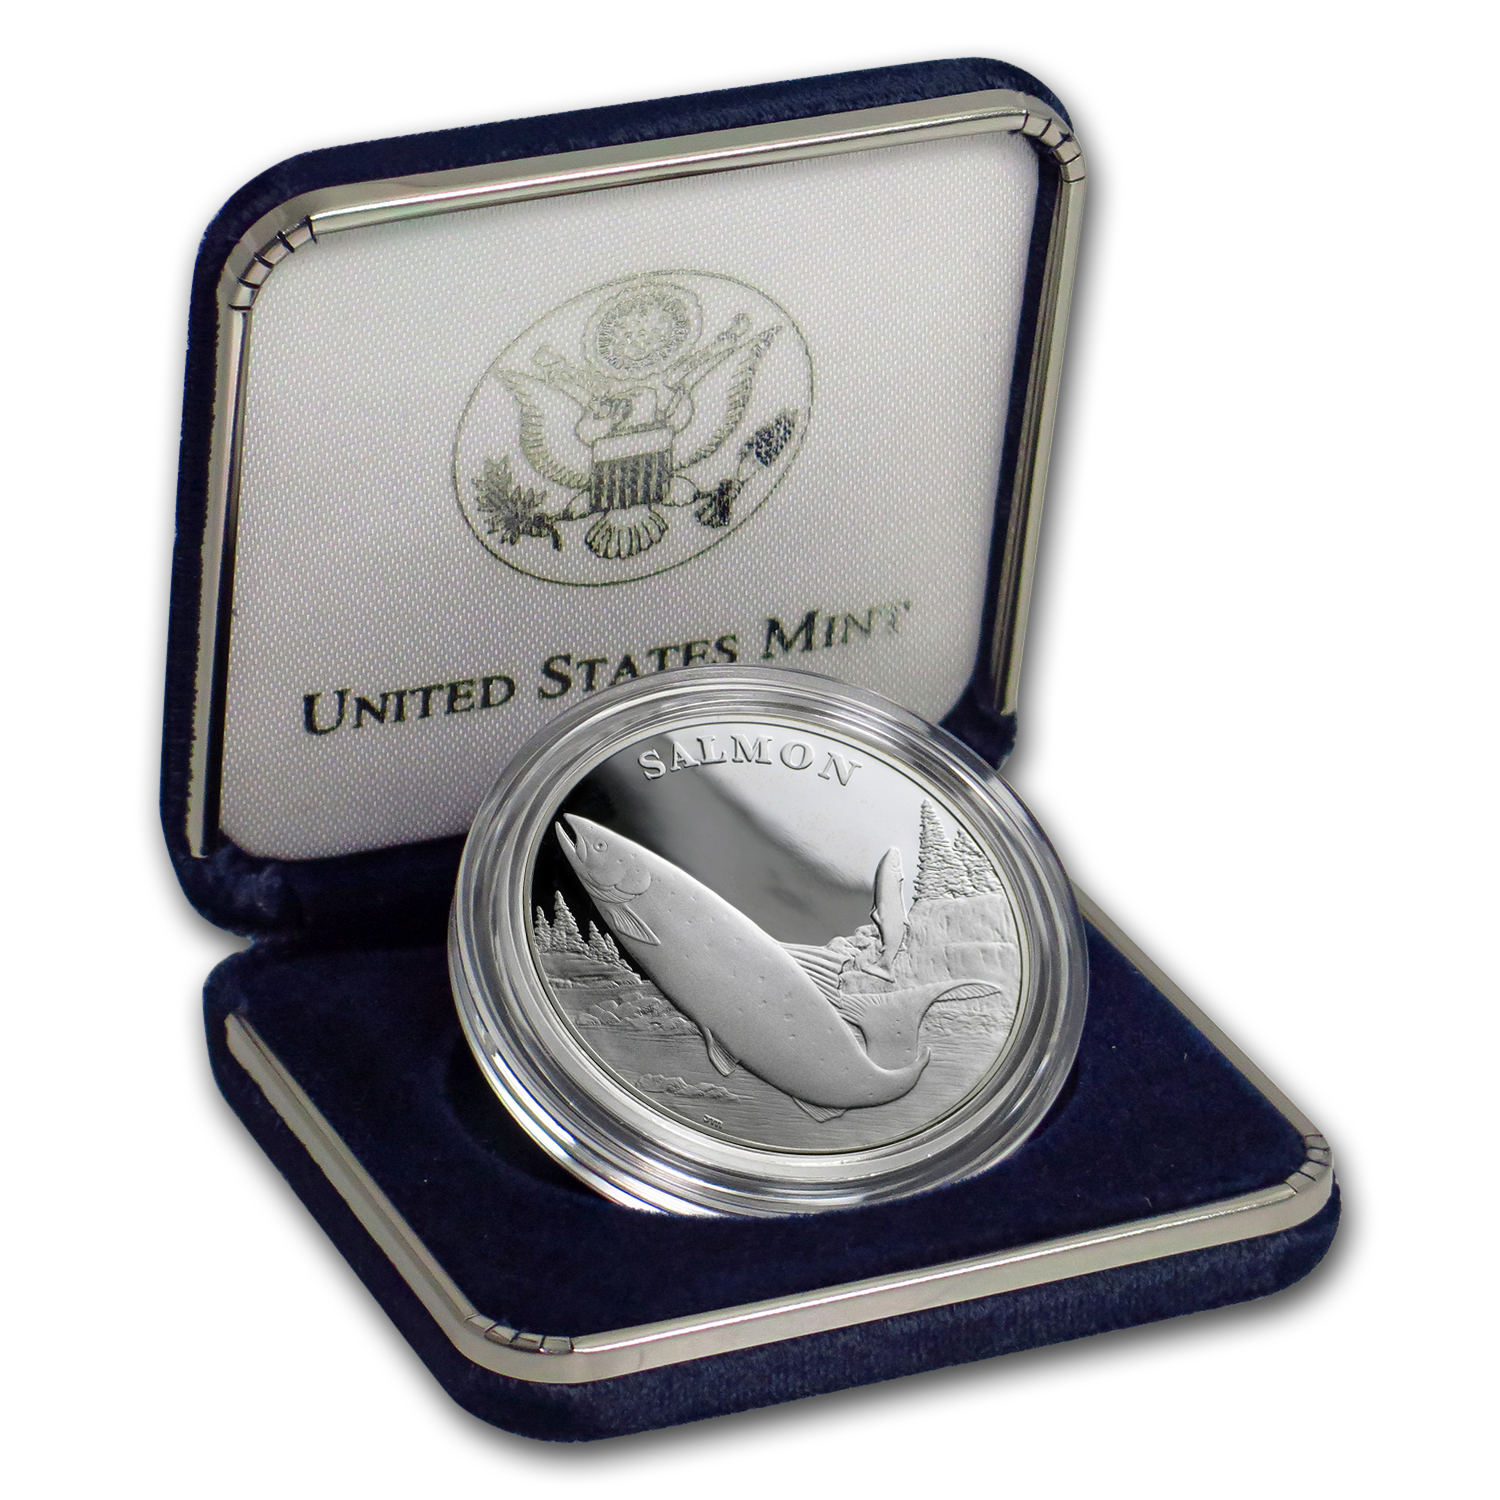 2003 National Wildlife Refuge System Proof Silver Medal - Salmon